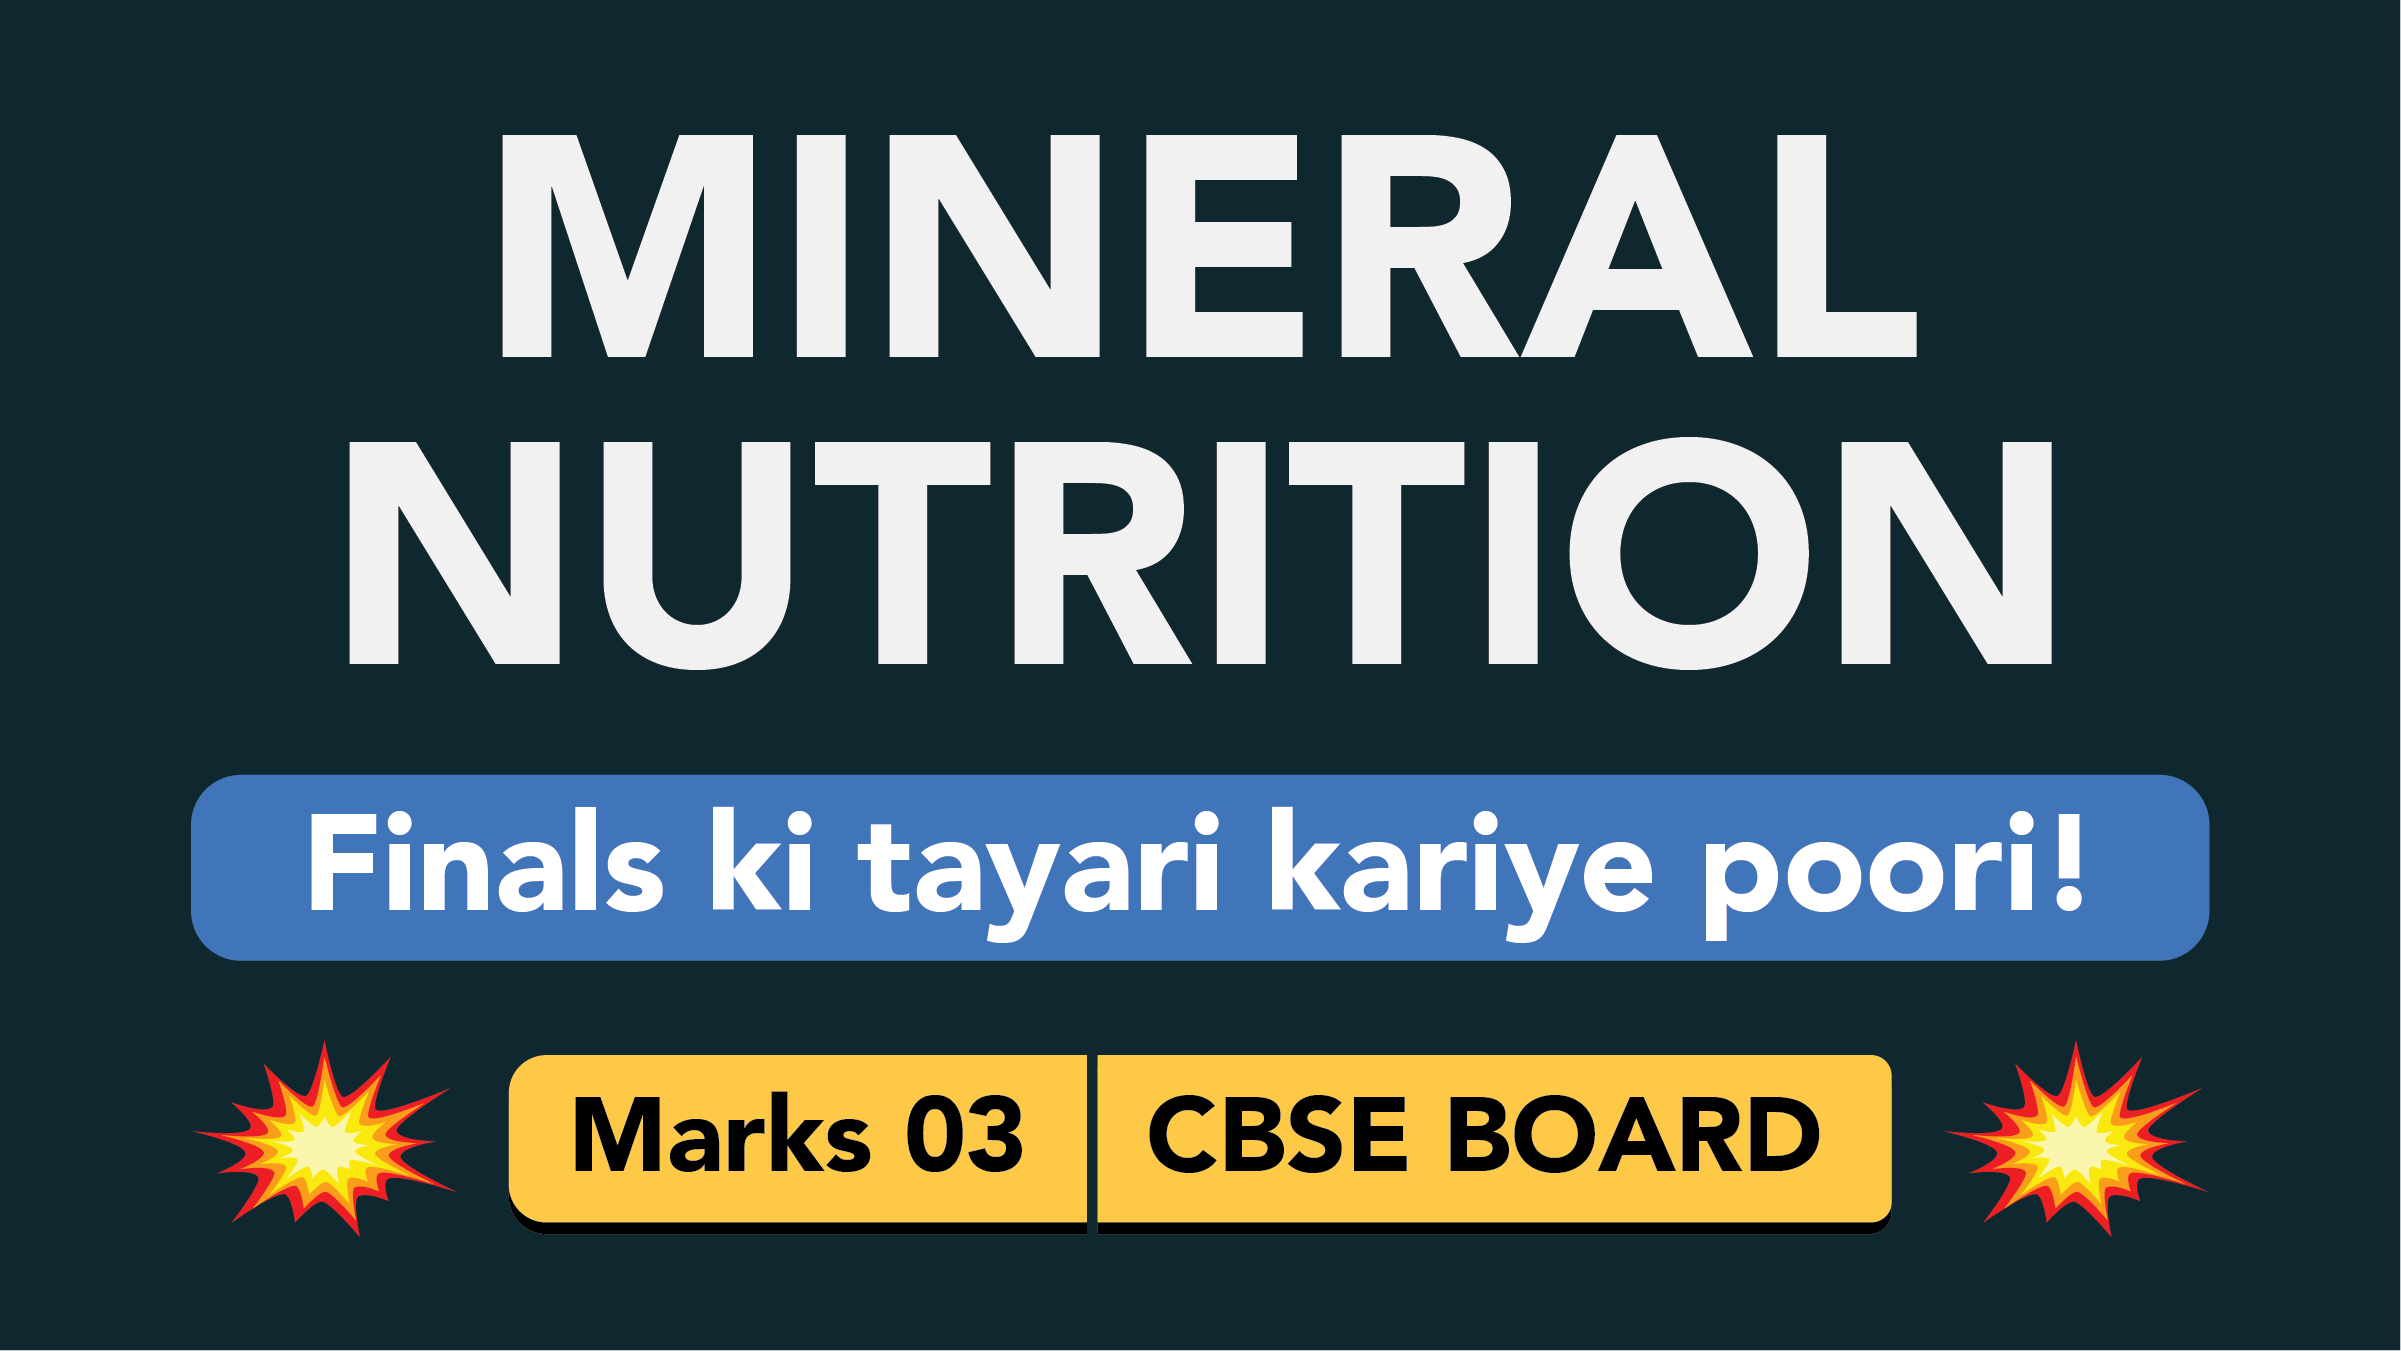 CBSE Board Class 11 MINERAL NUTRITION || Weightage and Important Topics